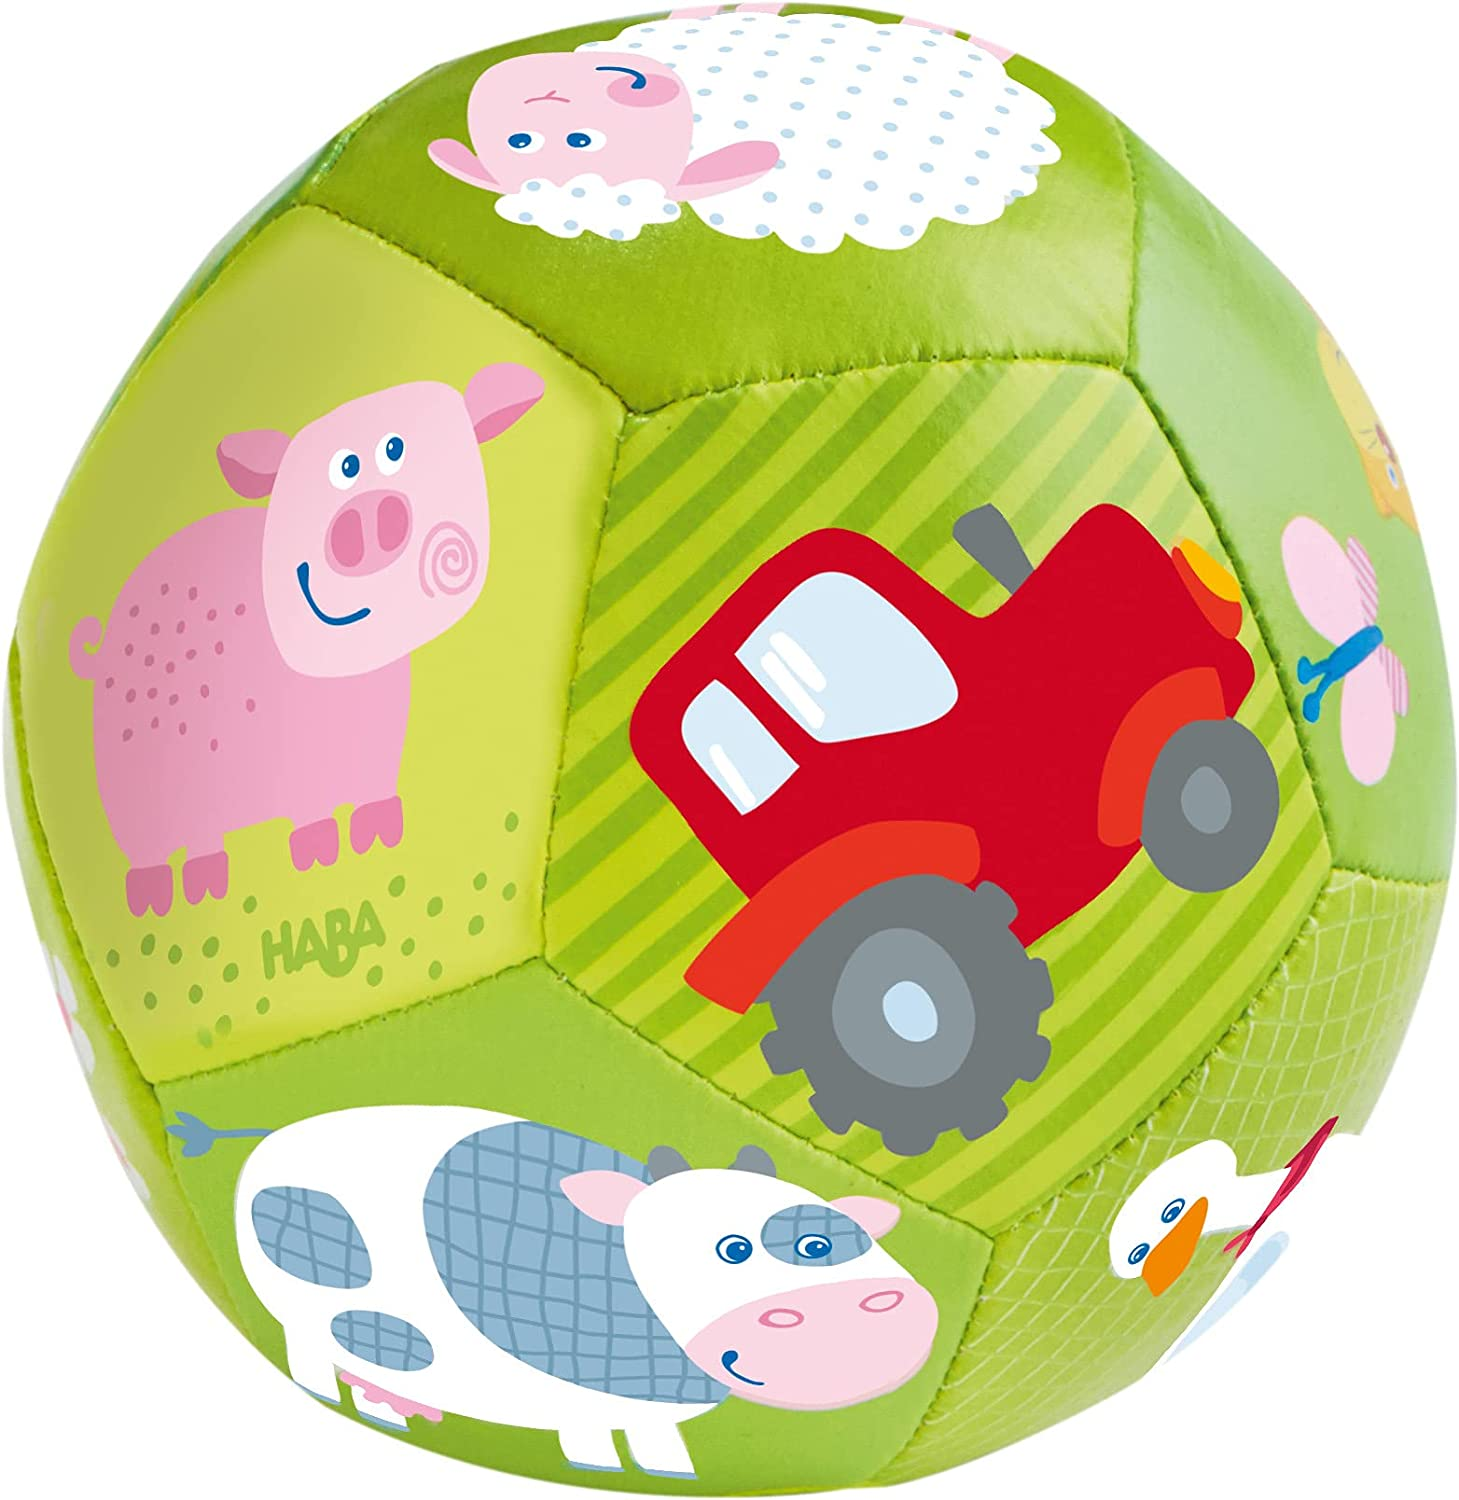 HABA Baby Ball on The Farm Super sale period limited Japan Maker New 4.5